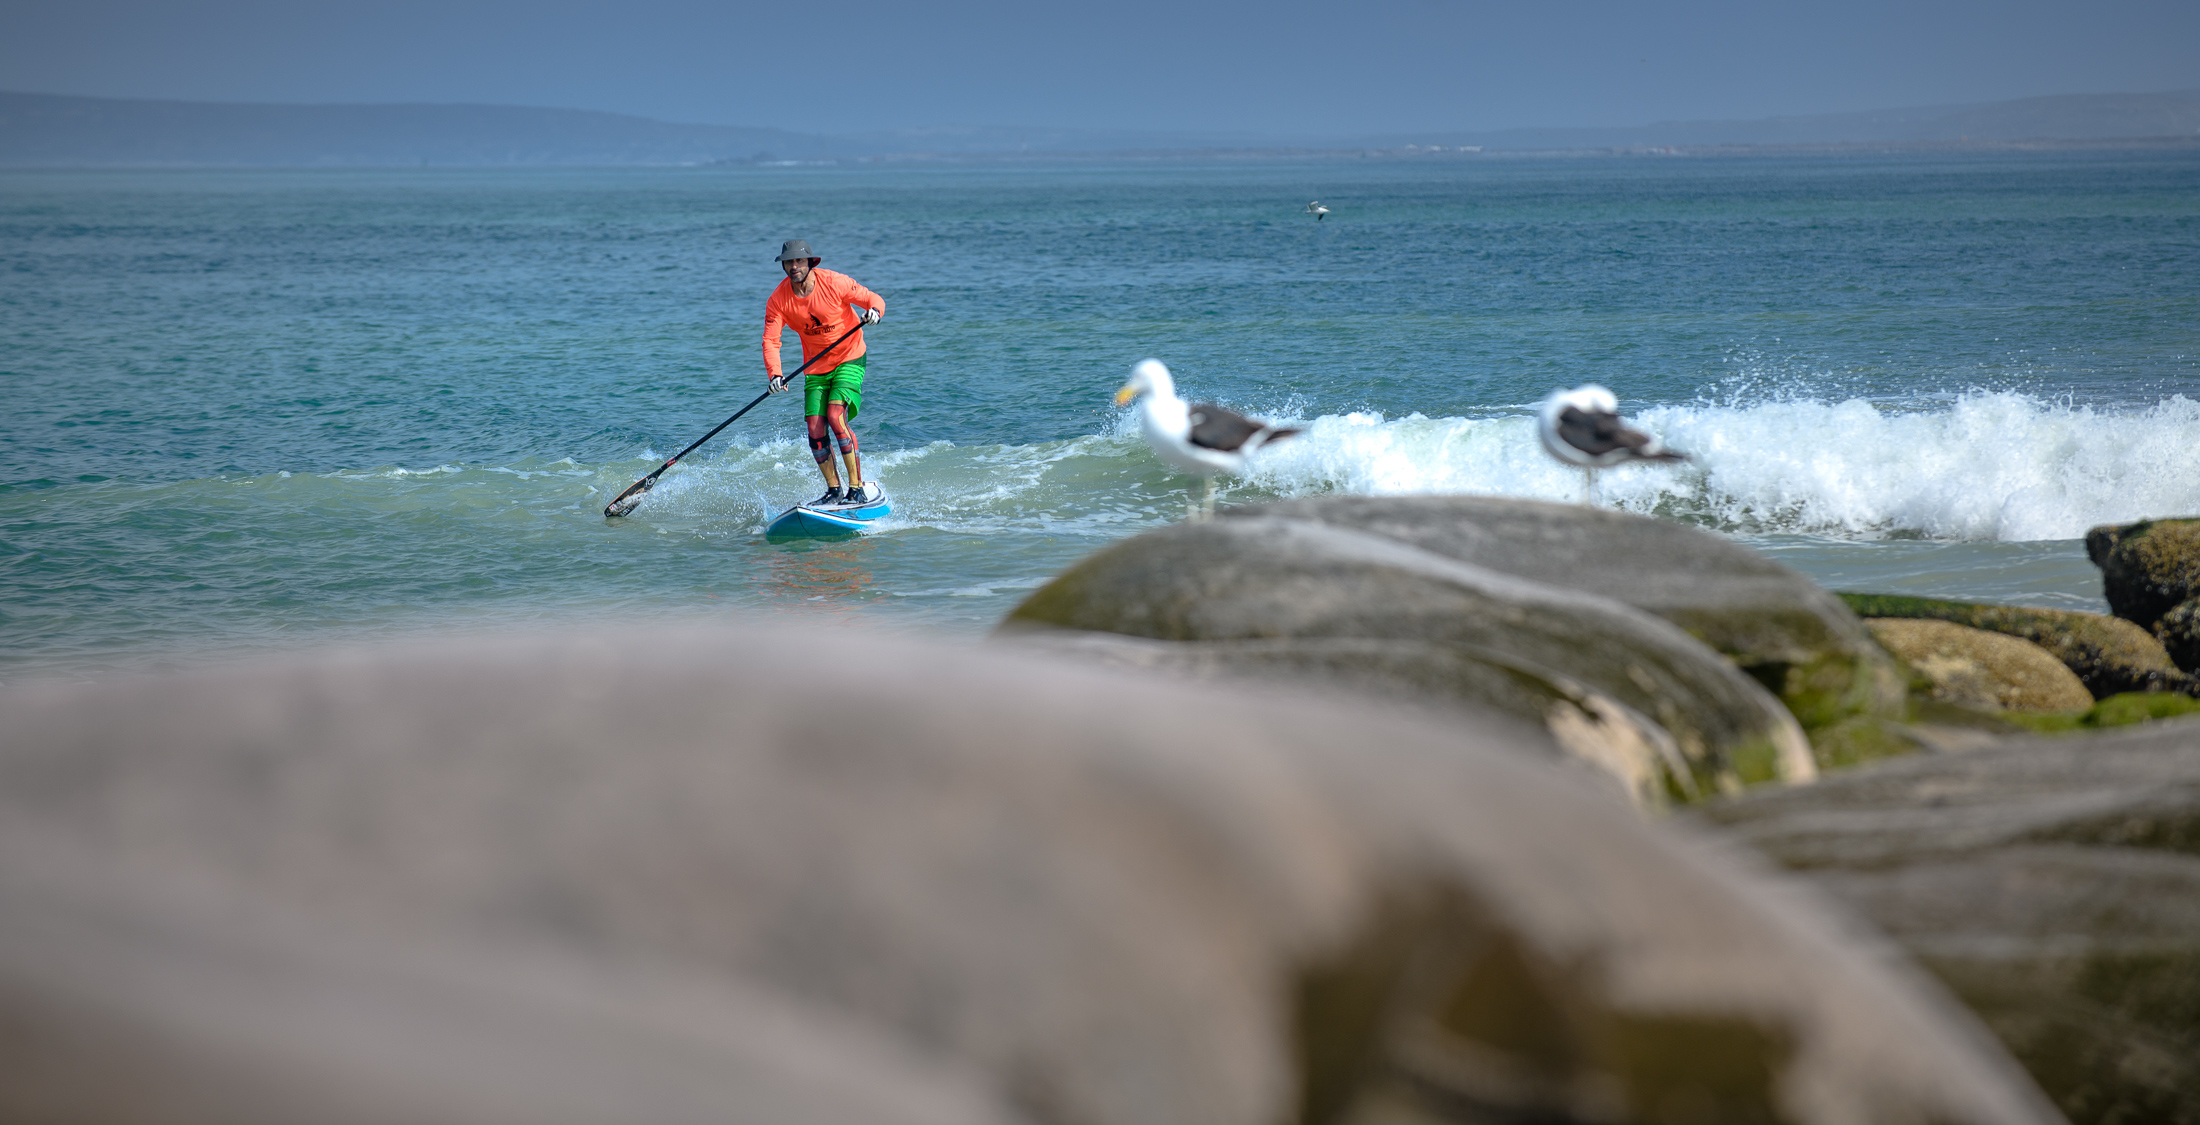 Langebaan, the watersport adventure hub of South Africa, a place of unparalleled beauty , stretching sand beaches and crystal blue water. An adventure travelers paradise. Sundowners on the beach or on your stoep looking acroos the bay as the last rays of sun casts its golden rays across the lines of the last few kitesurfers. […]